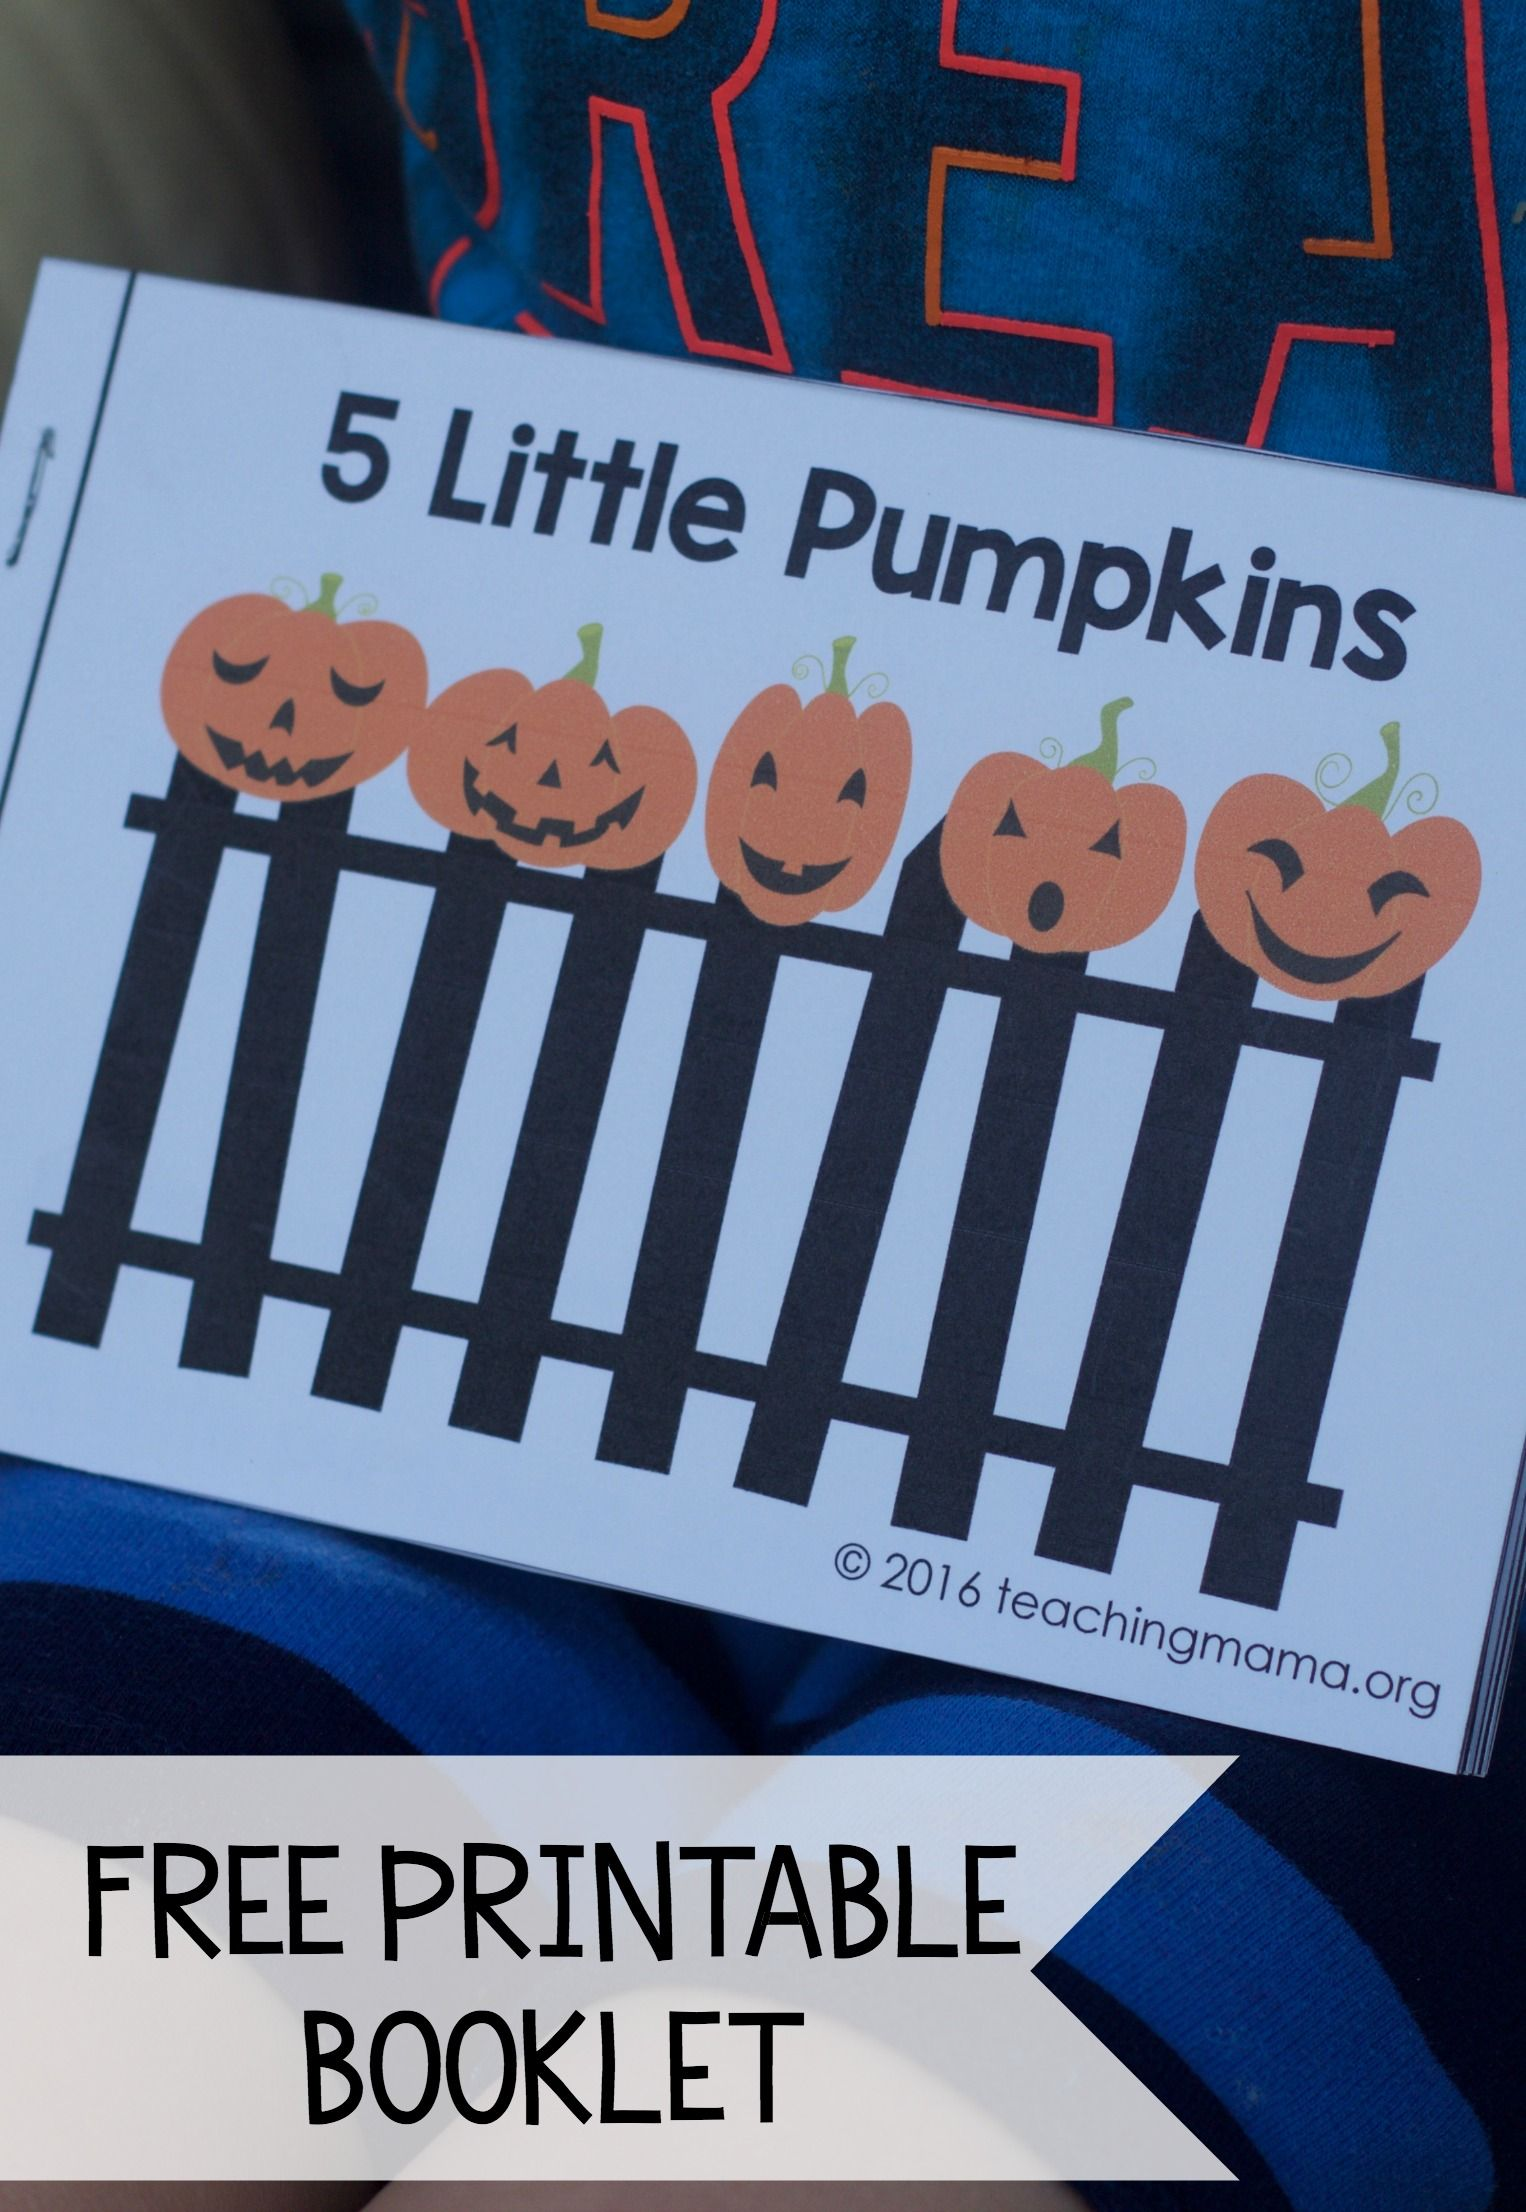 Five Little Pumpkins - Free Rhyme Booklet | Teaching Mama\'s Posts ...